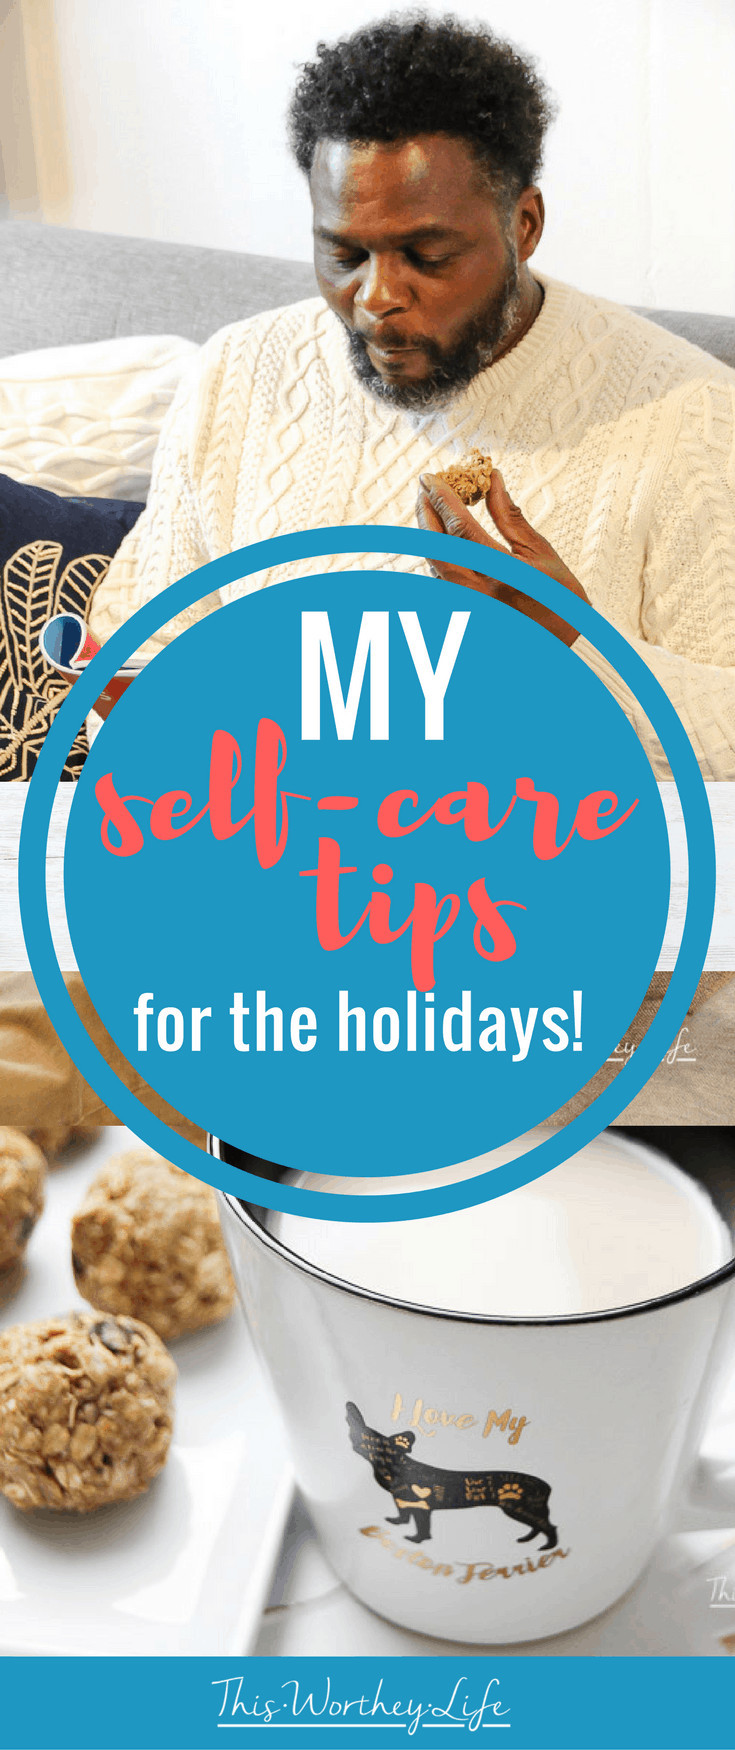 With the holidays just around the corner, it's important to practice self-care, have me-time and find ways to de-stress before and during the holiday season. I'm sharing ways I carve out me-time before the holidays.